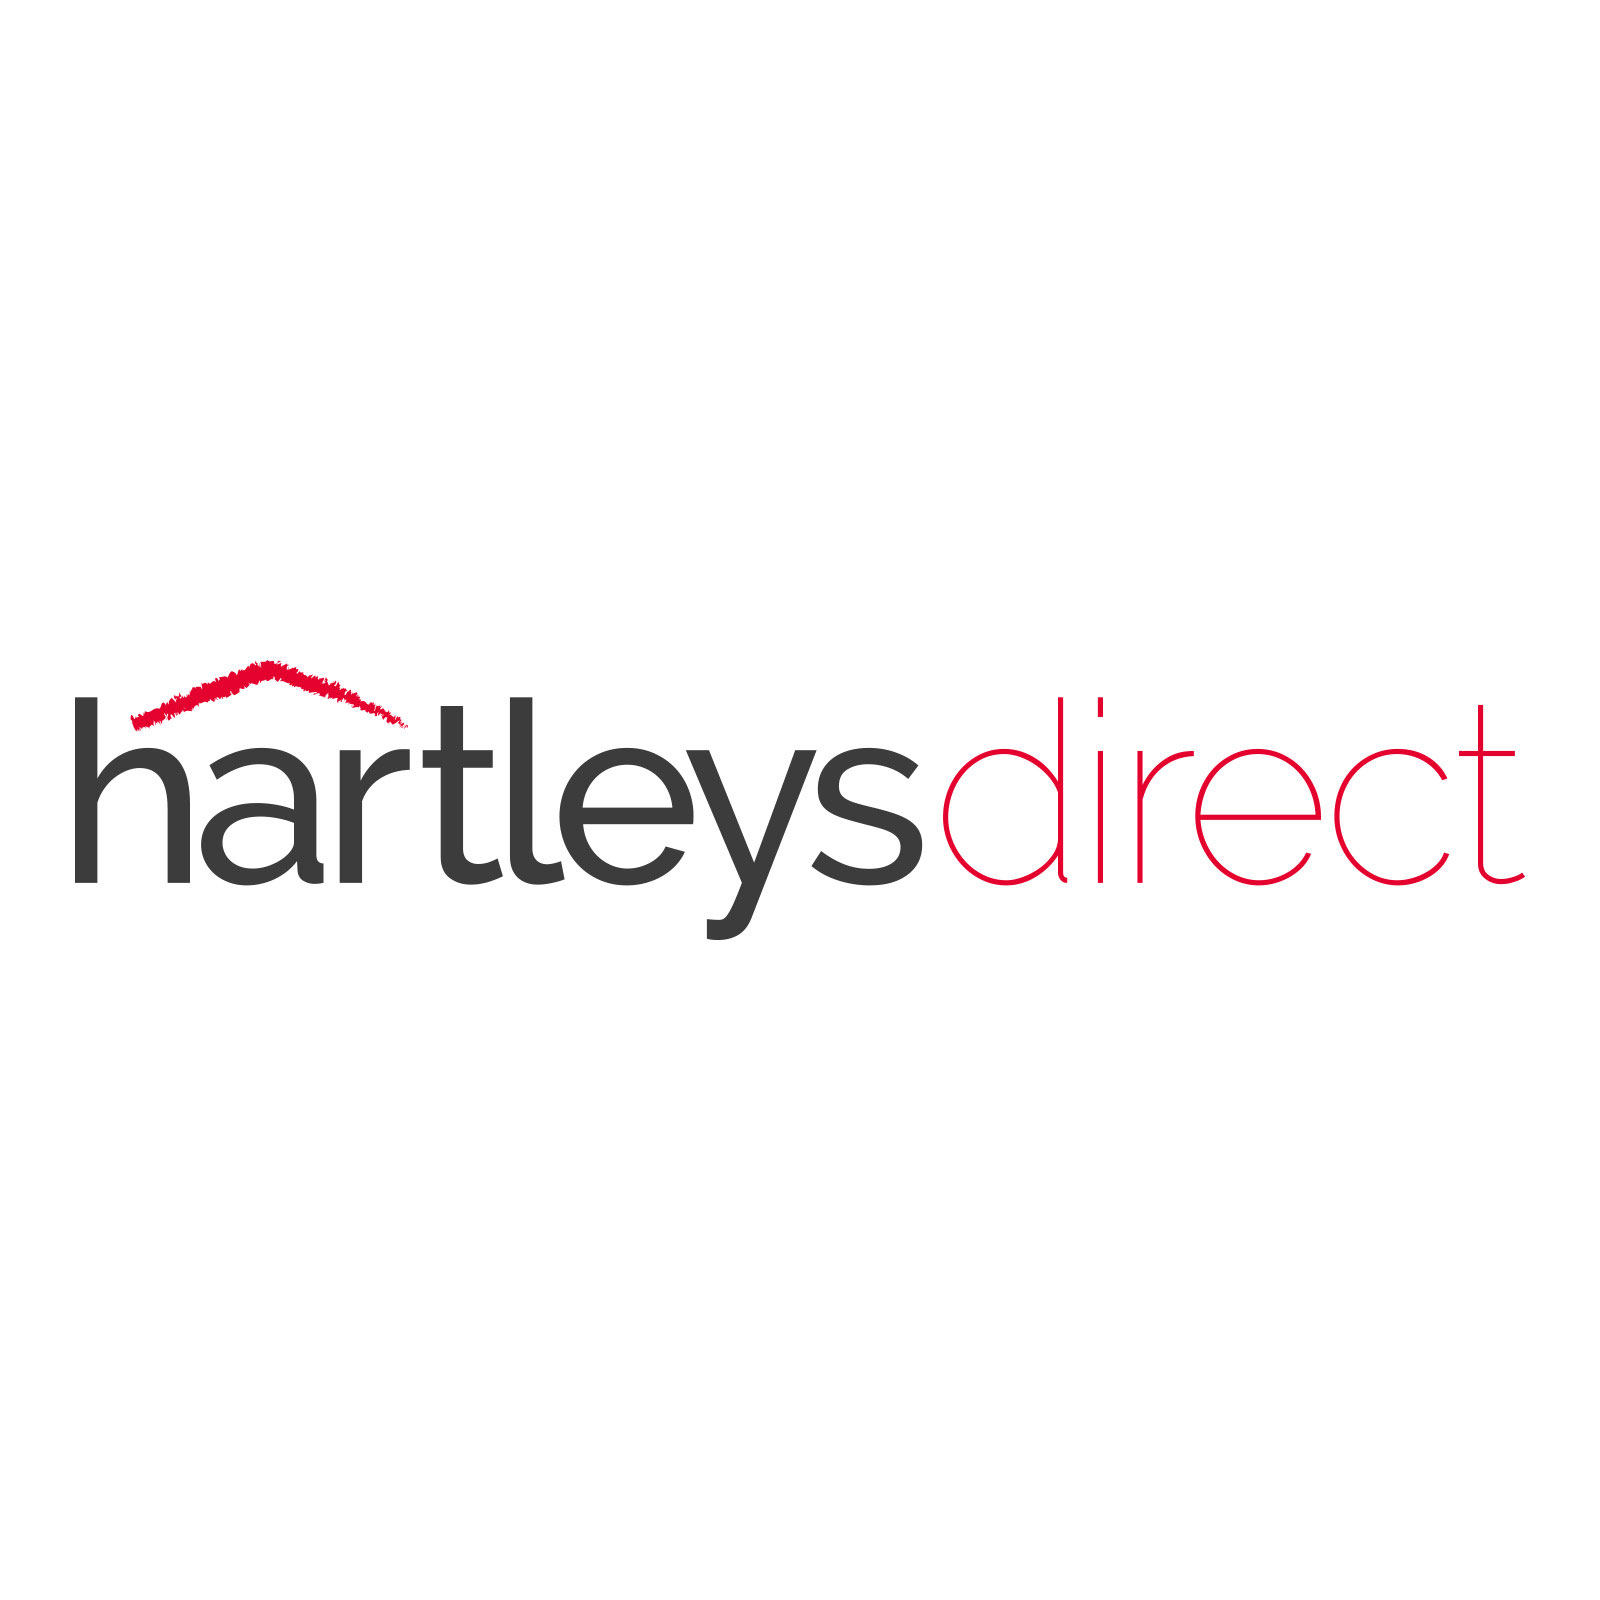 Hartleys-2.6ft-Round-Folding-Table-with-Accessories-on-White-Background.jpg